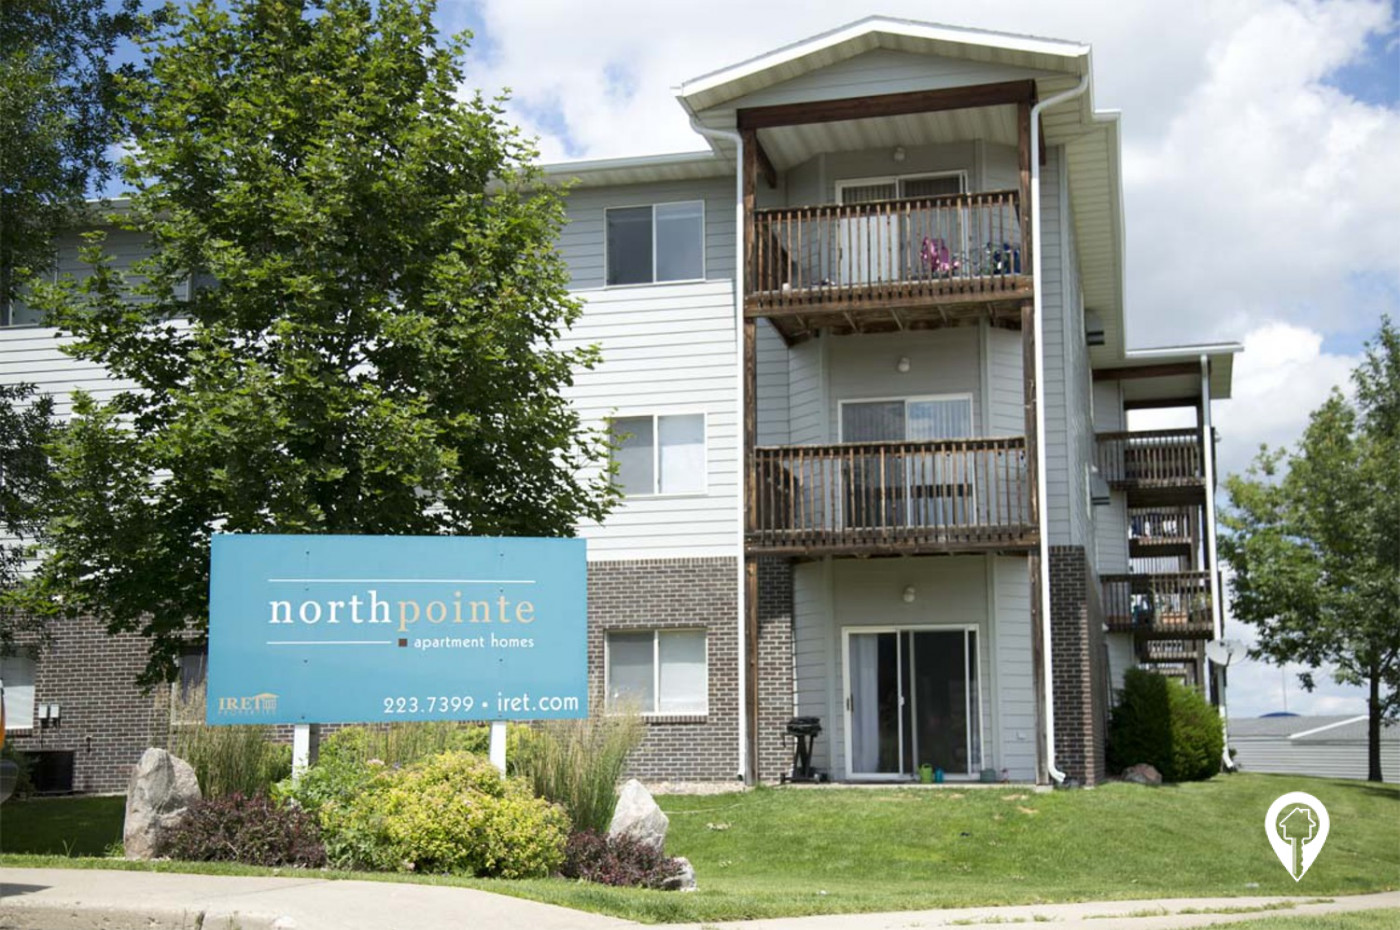 North-Pointe-Apartment-Homes